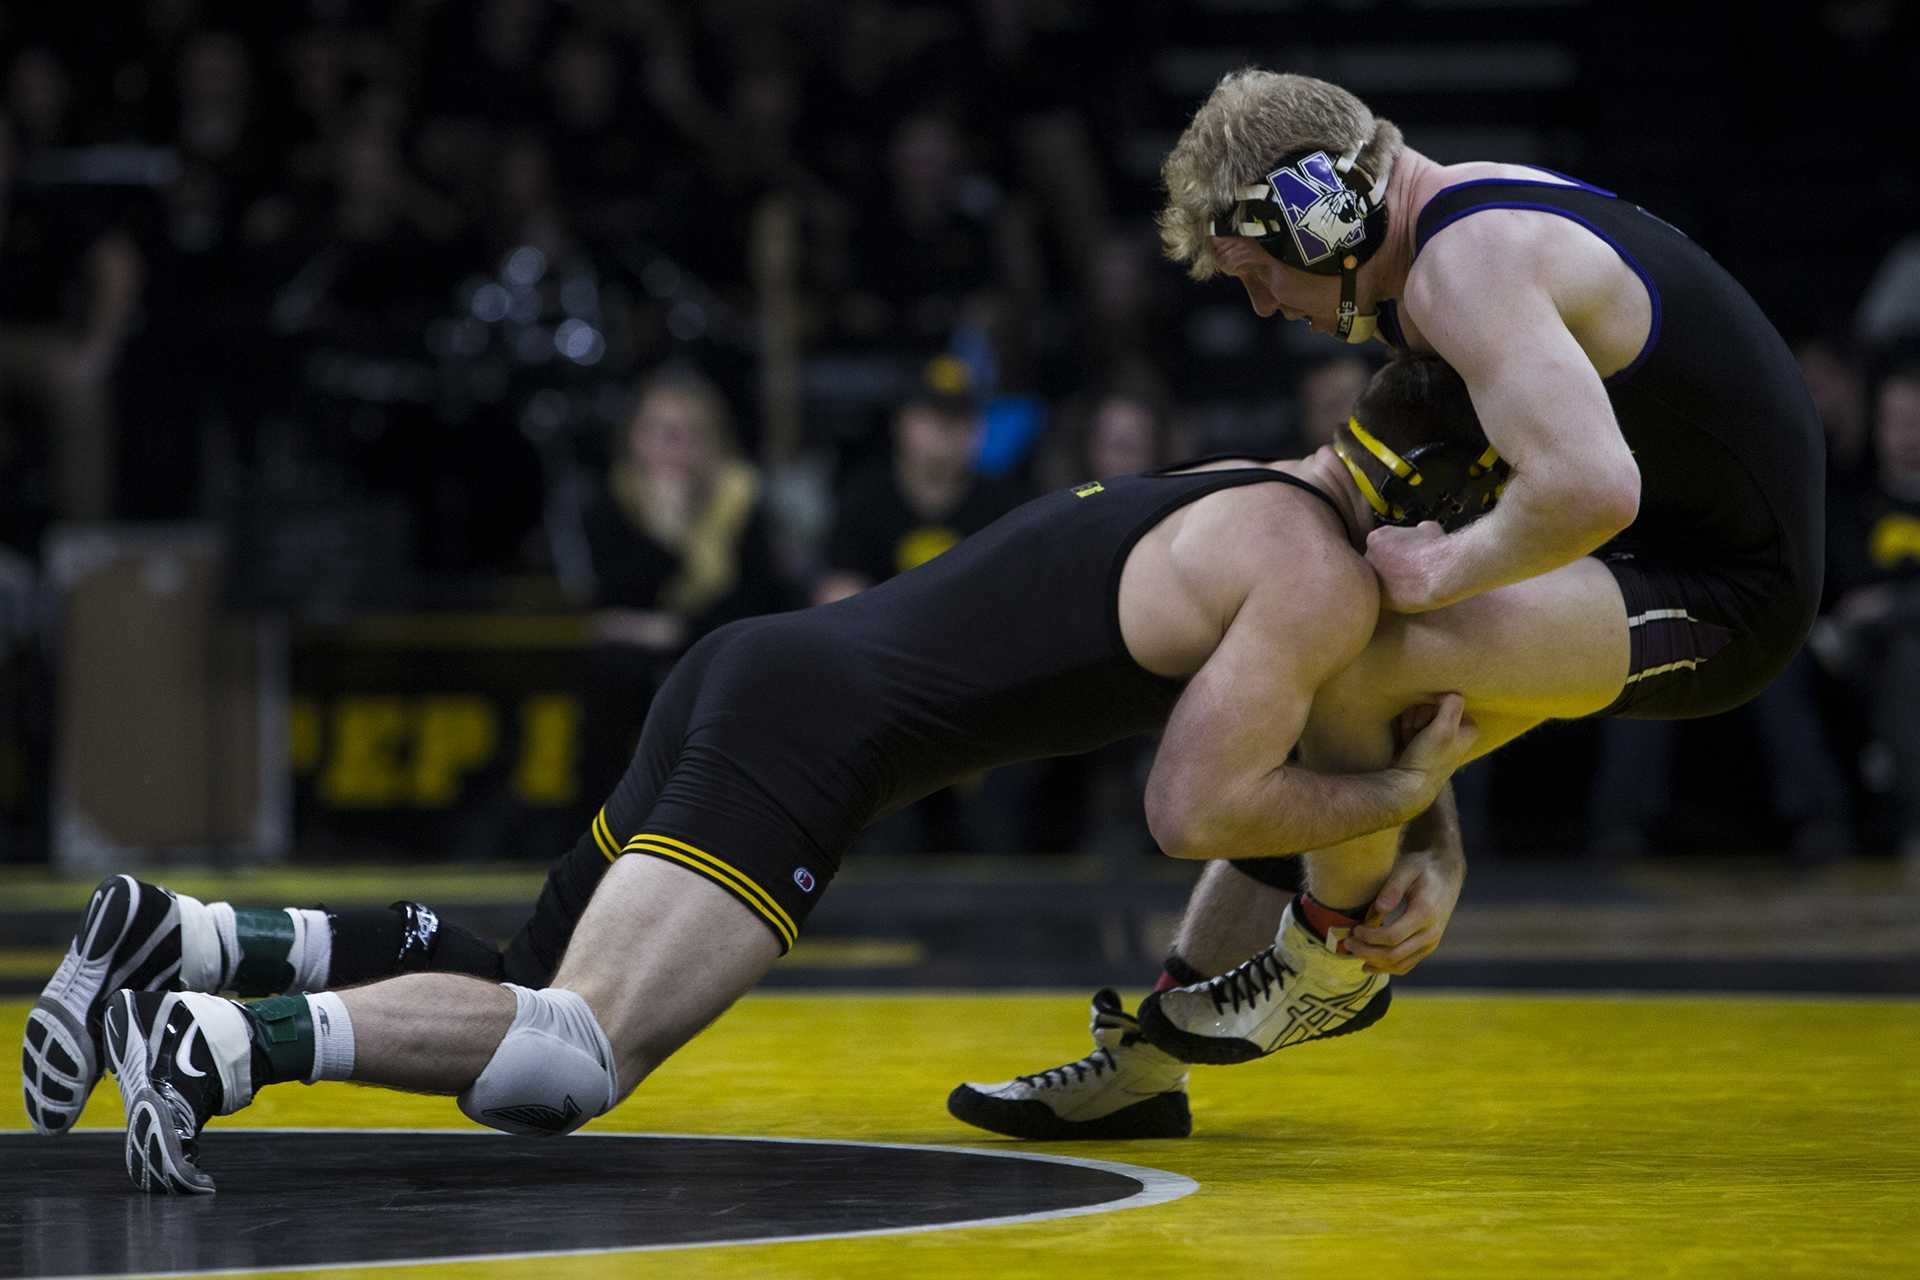 Iowa's #7 ranked 165 pound Alex Marinelli takes down Northwestern's Michael Sepke during the Iowa vs. Northwestern dual meet on Sunday, Feb. 4, 2018. The Hawkeyes defeated the Wildcats, 33-2. (Nick Rohlman/The Daily Iowan)